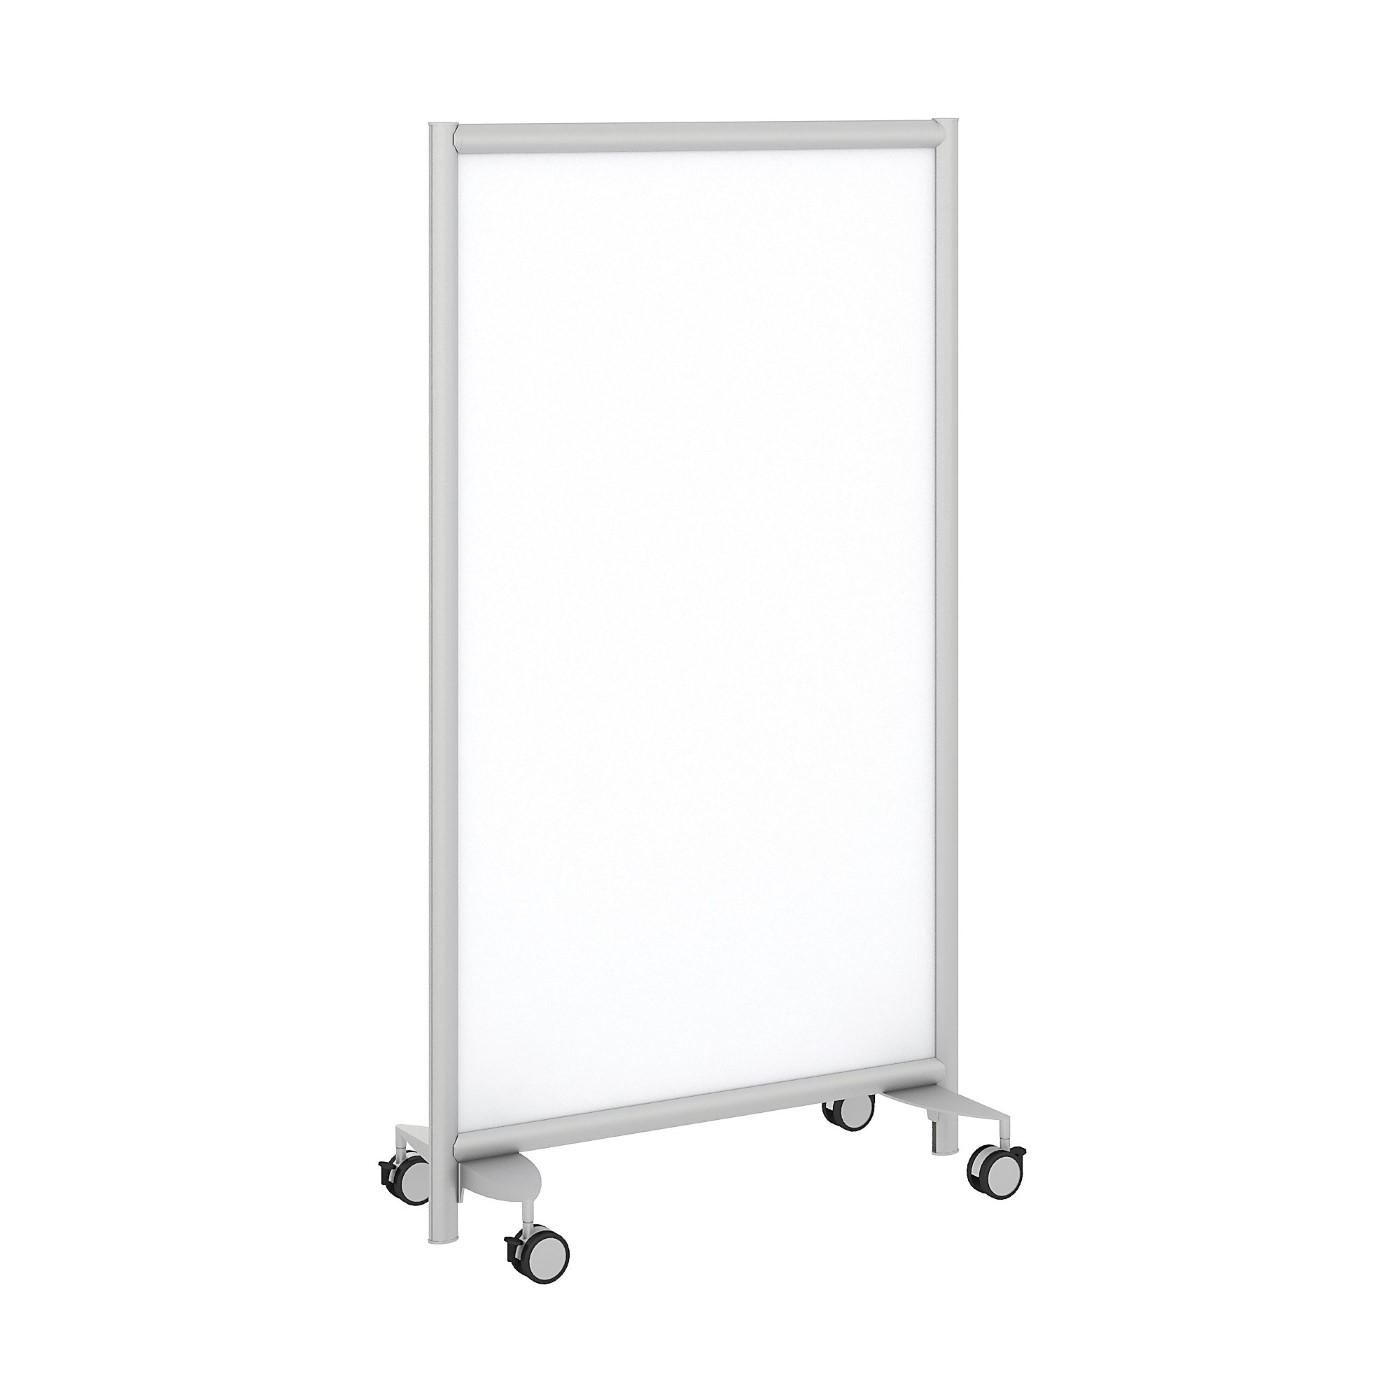 BUSH BUSINESS FURNITURE FREESTANDING WHITE BOARD PRIVACY PANEL WITH WHEELED BASE. FREE SHIPPING